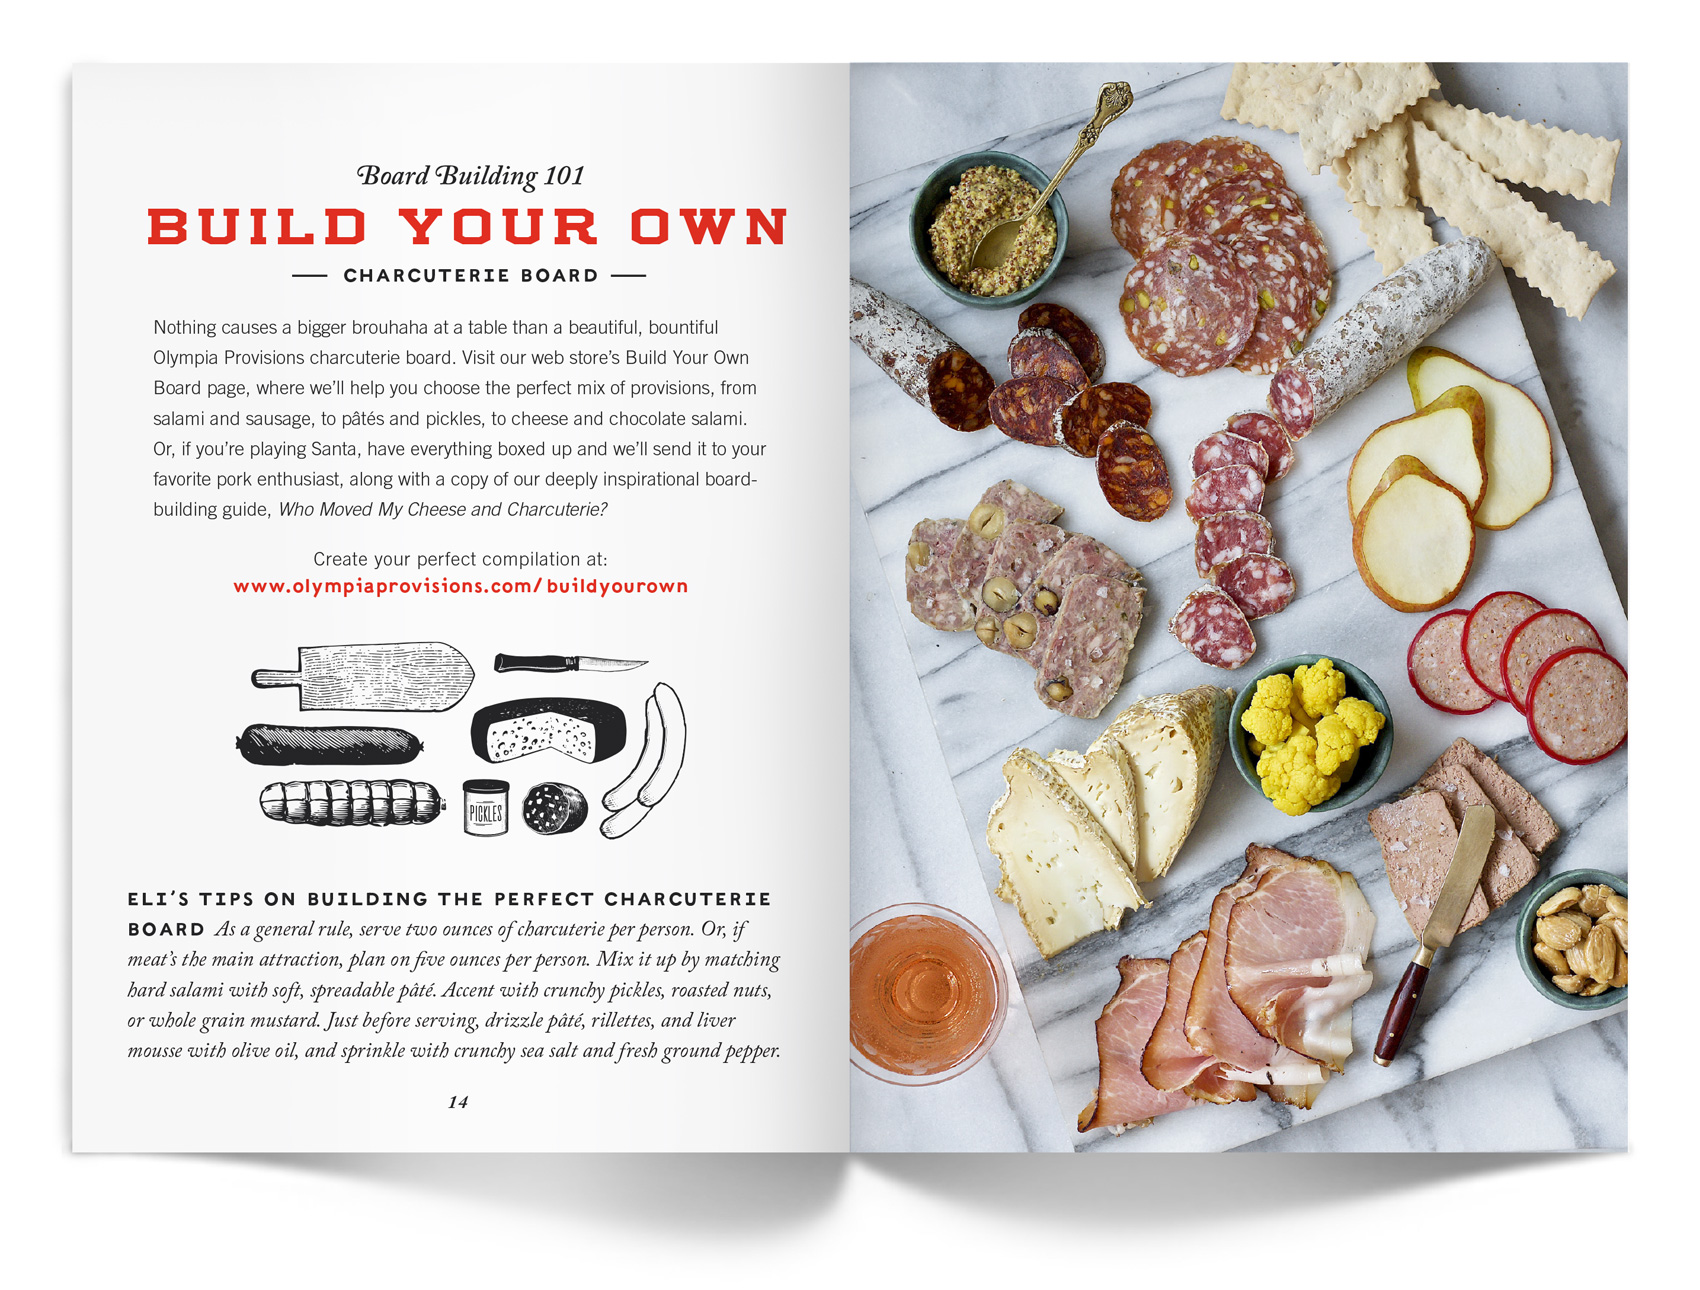 Build your own charcuterie board with Olympia Provisions.